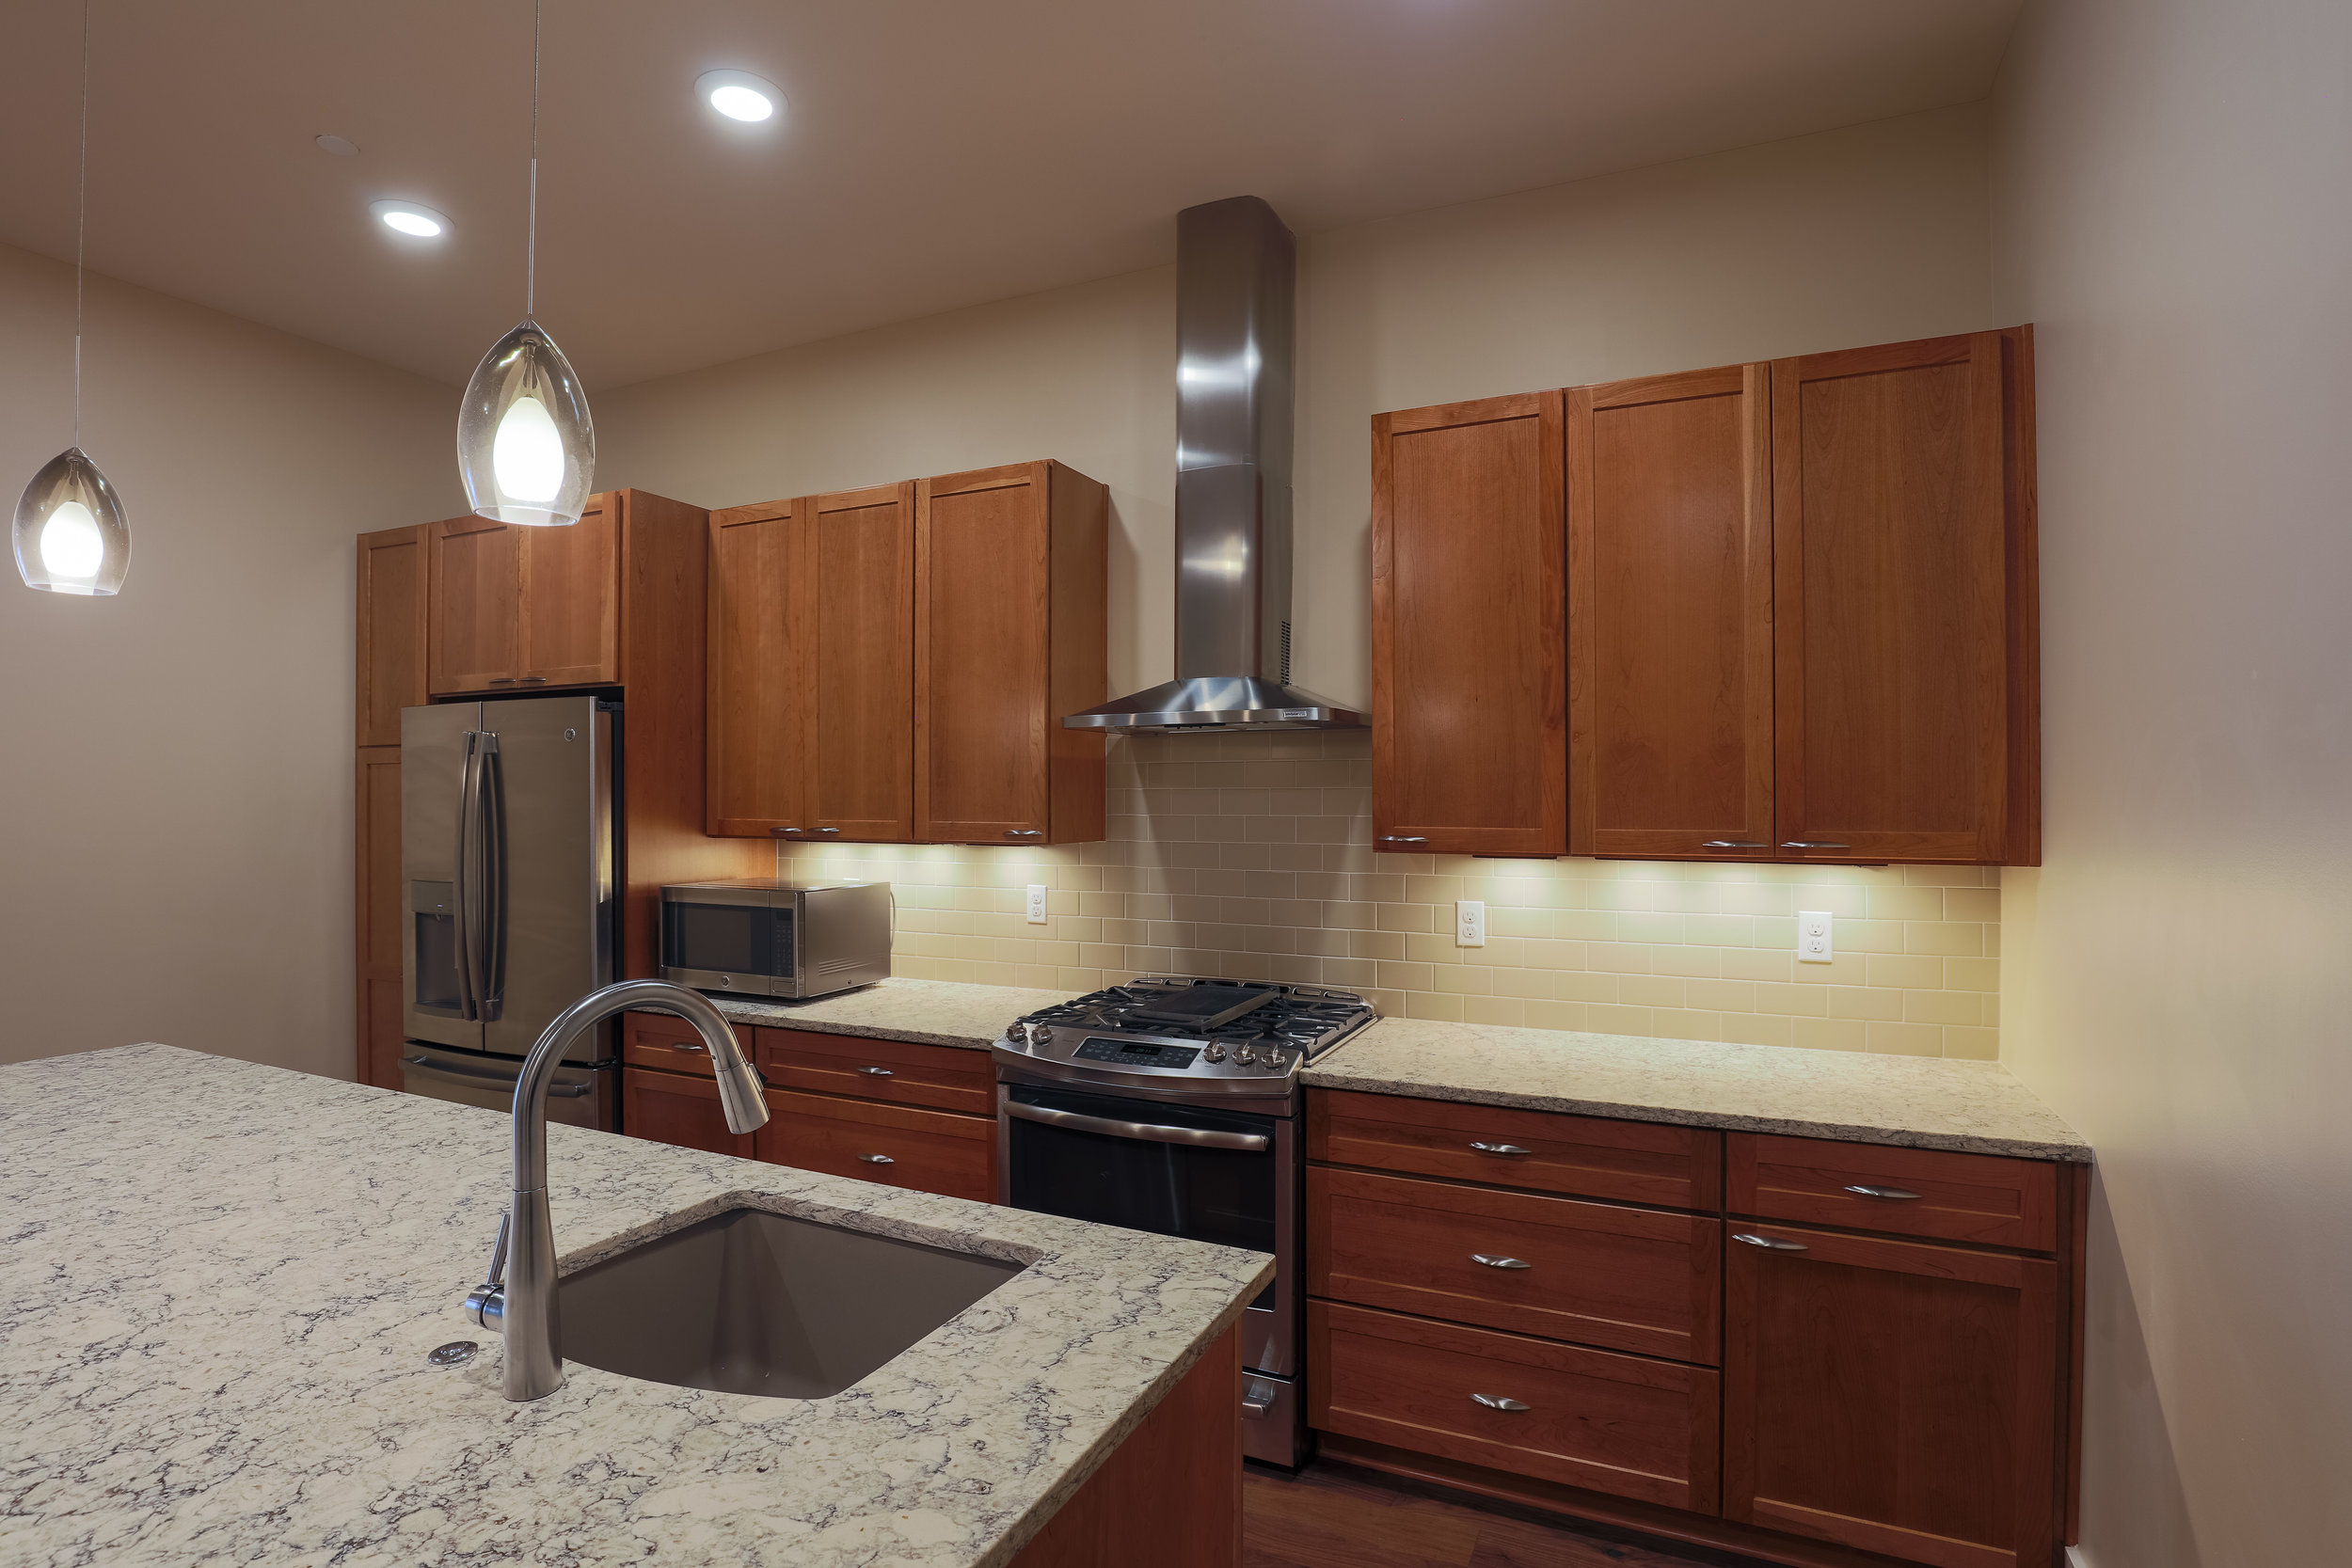 MINERS POINT  | 701 12th Street | Kitchen| Sold & Occupied Unit